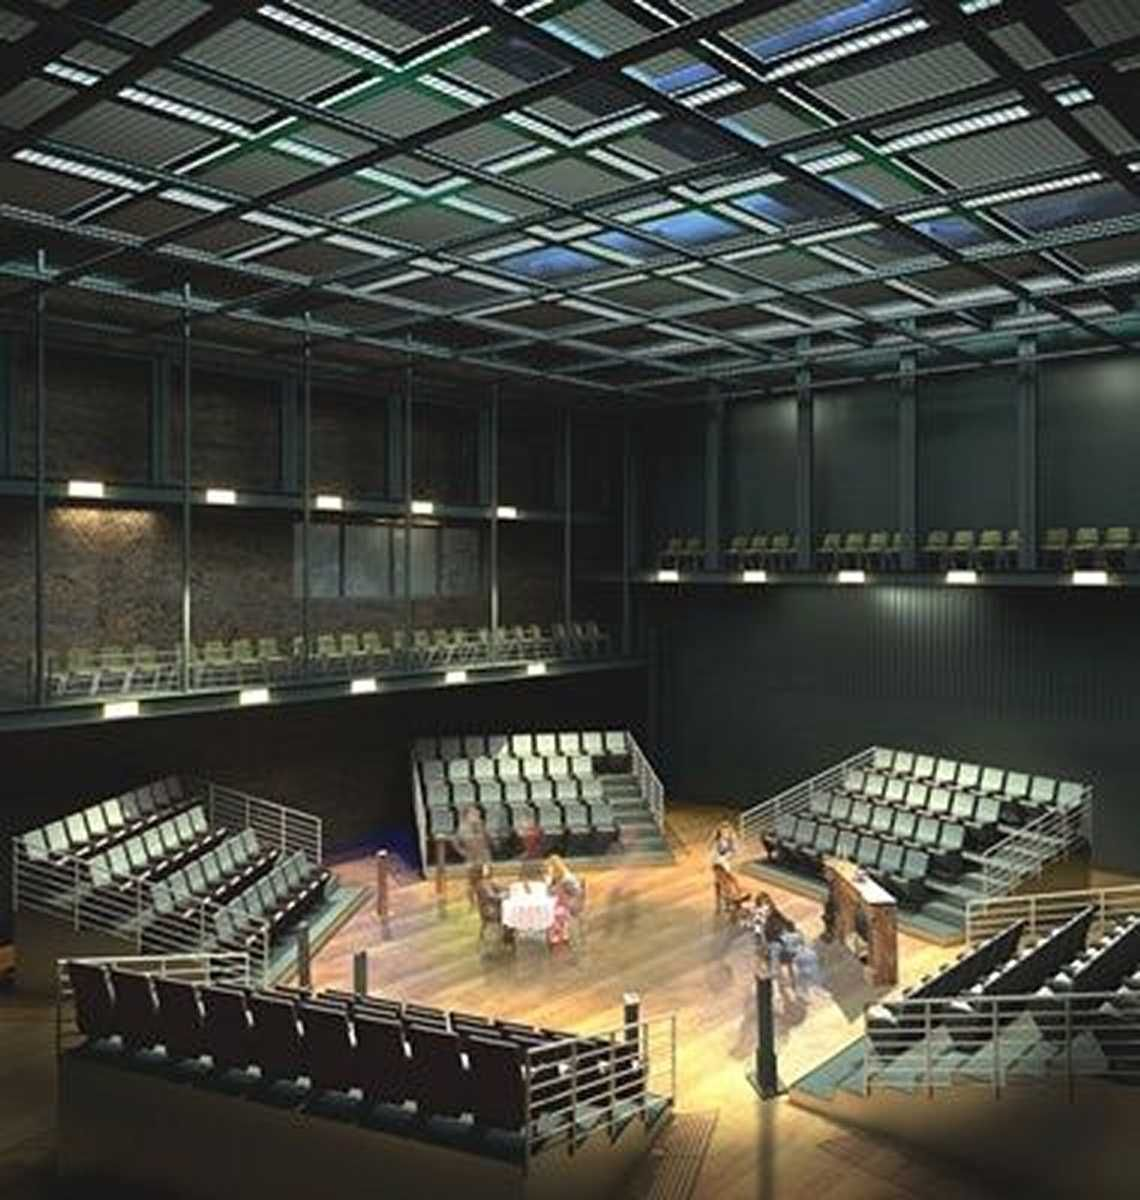 Center Stage Theater Architecture Flex Space Performance Theatre Architecture Theater